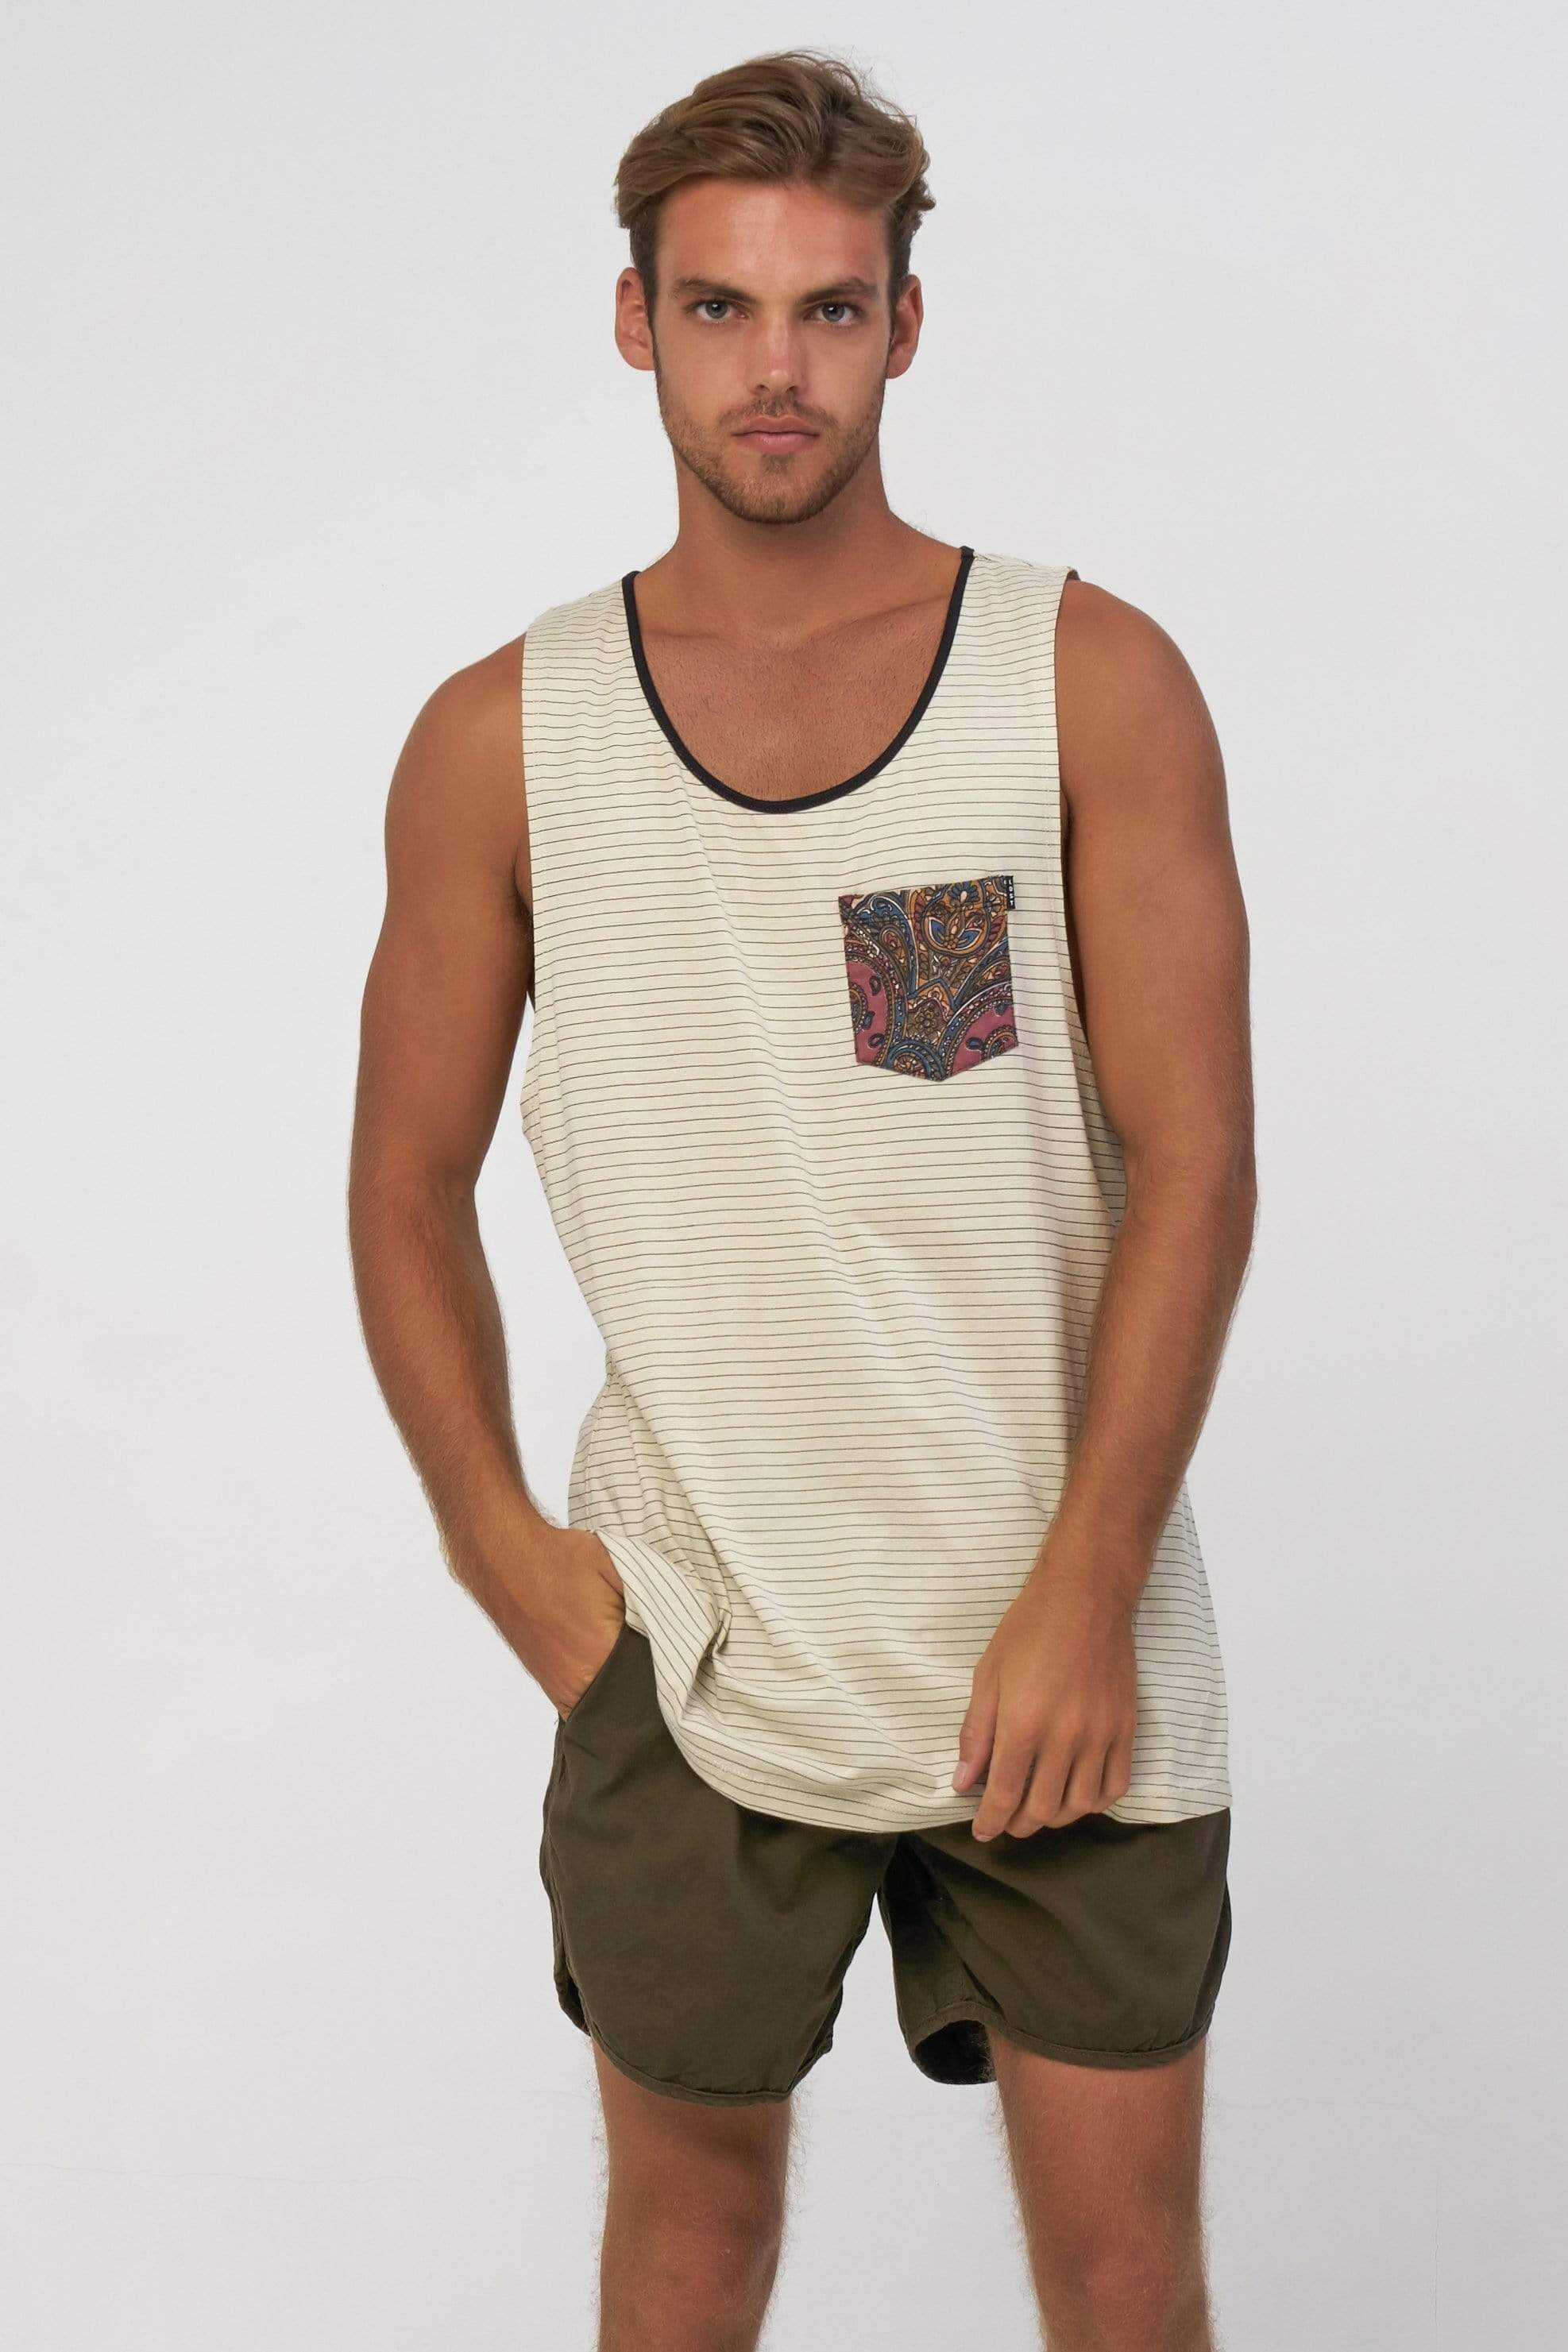 Paisley Pocket Sing - Man Singlet - LOST IN PARADISE